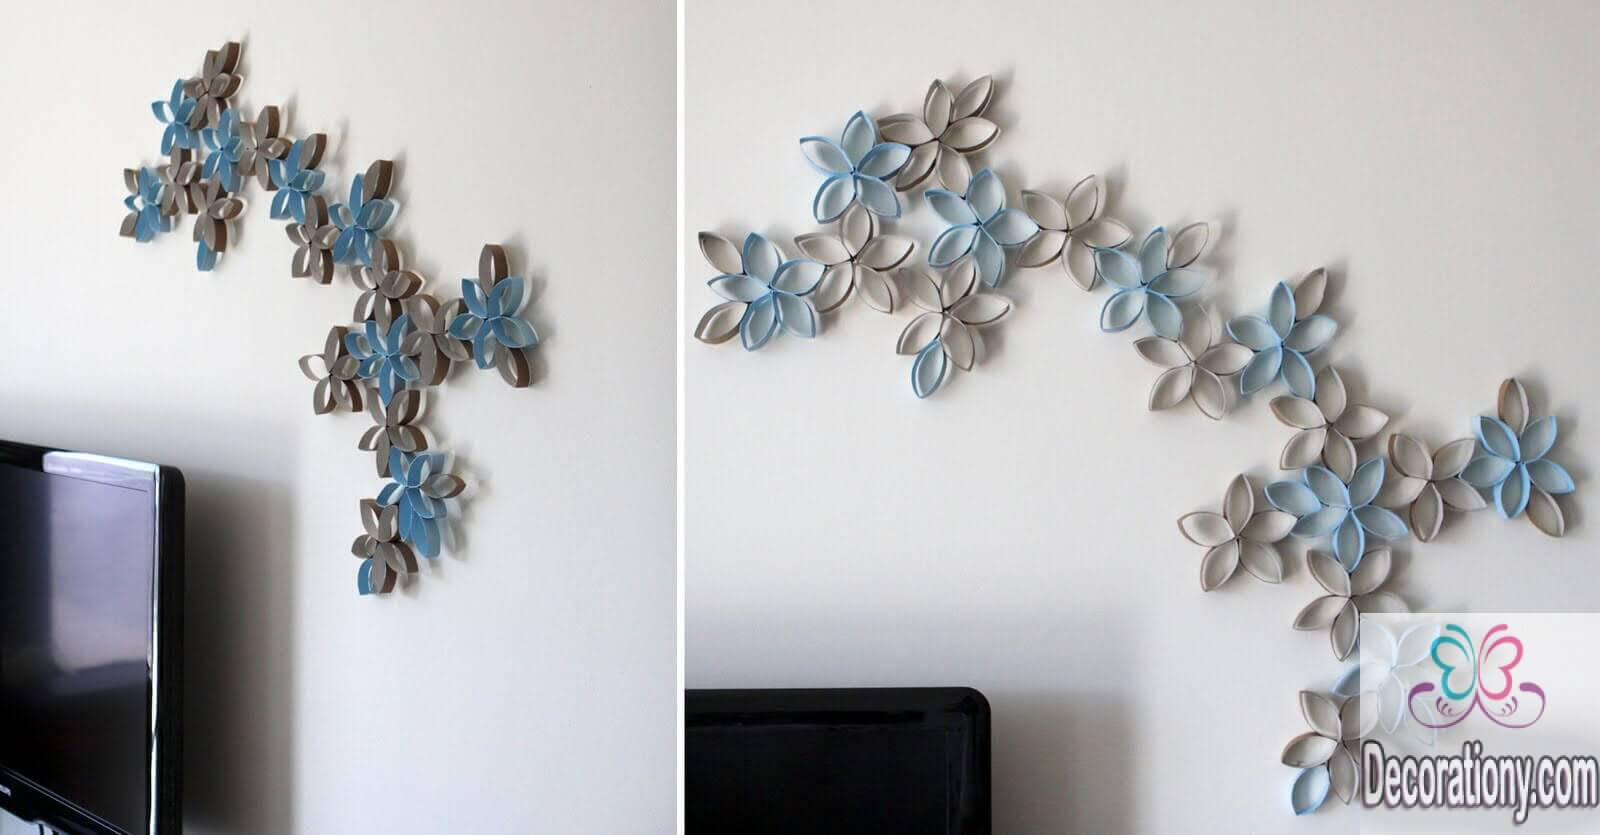 How To Make Wall Decor With Paper : Living room wall decor ideas